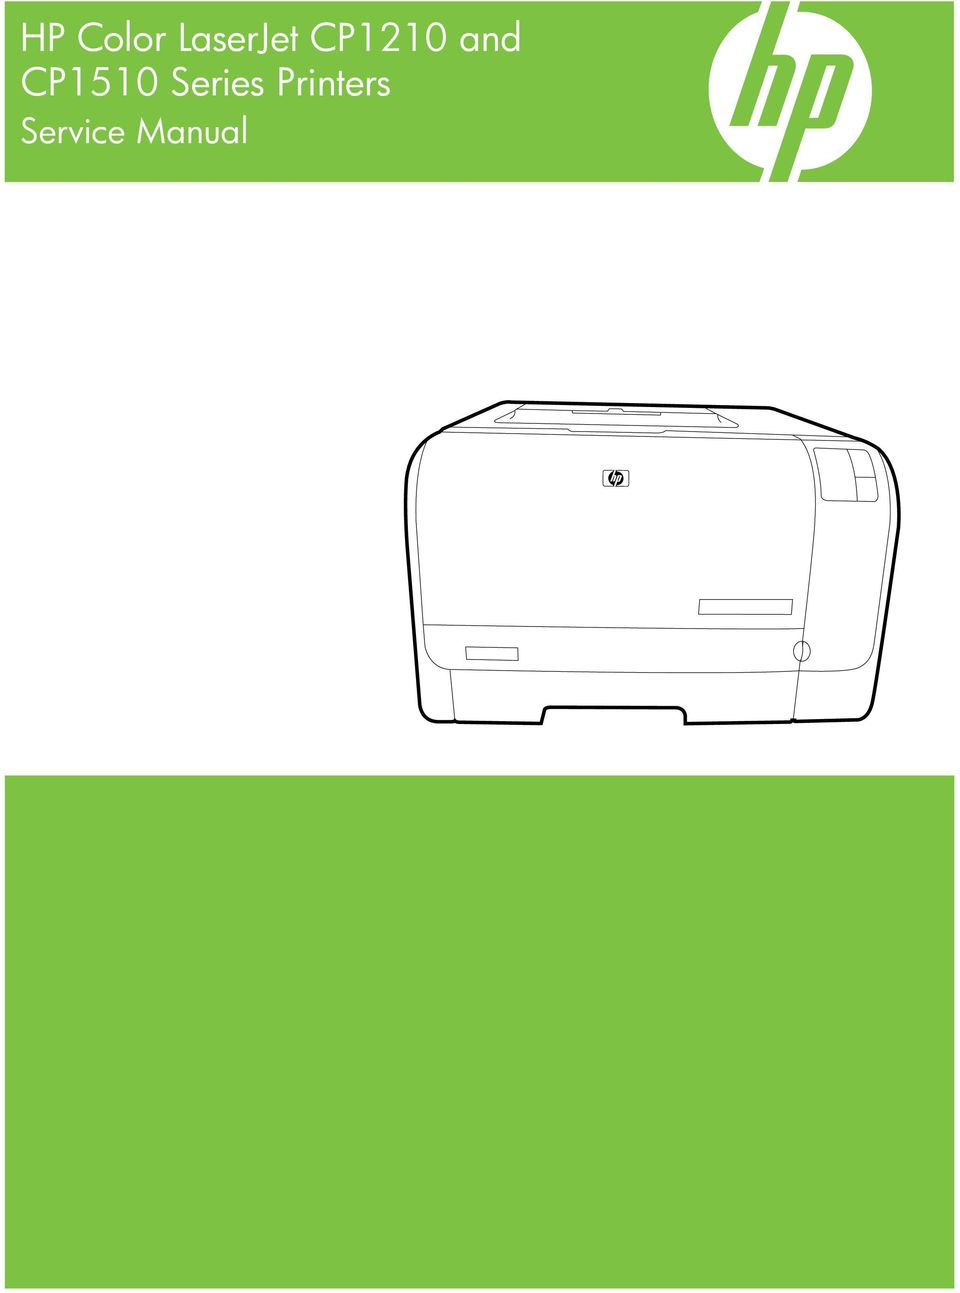 ... LaserJet CP1210 and CP1510 Series Printers Service Manual. and CP1510